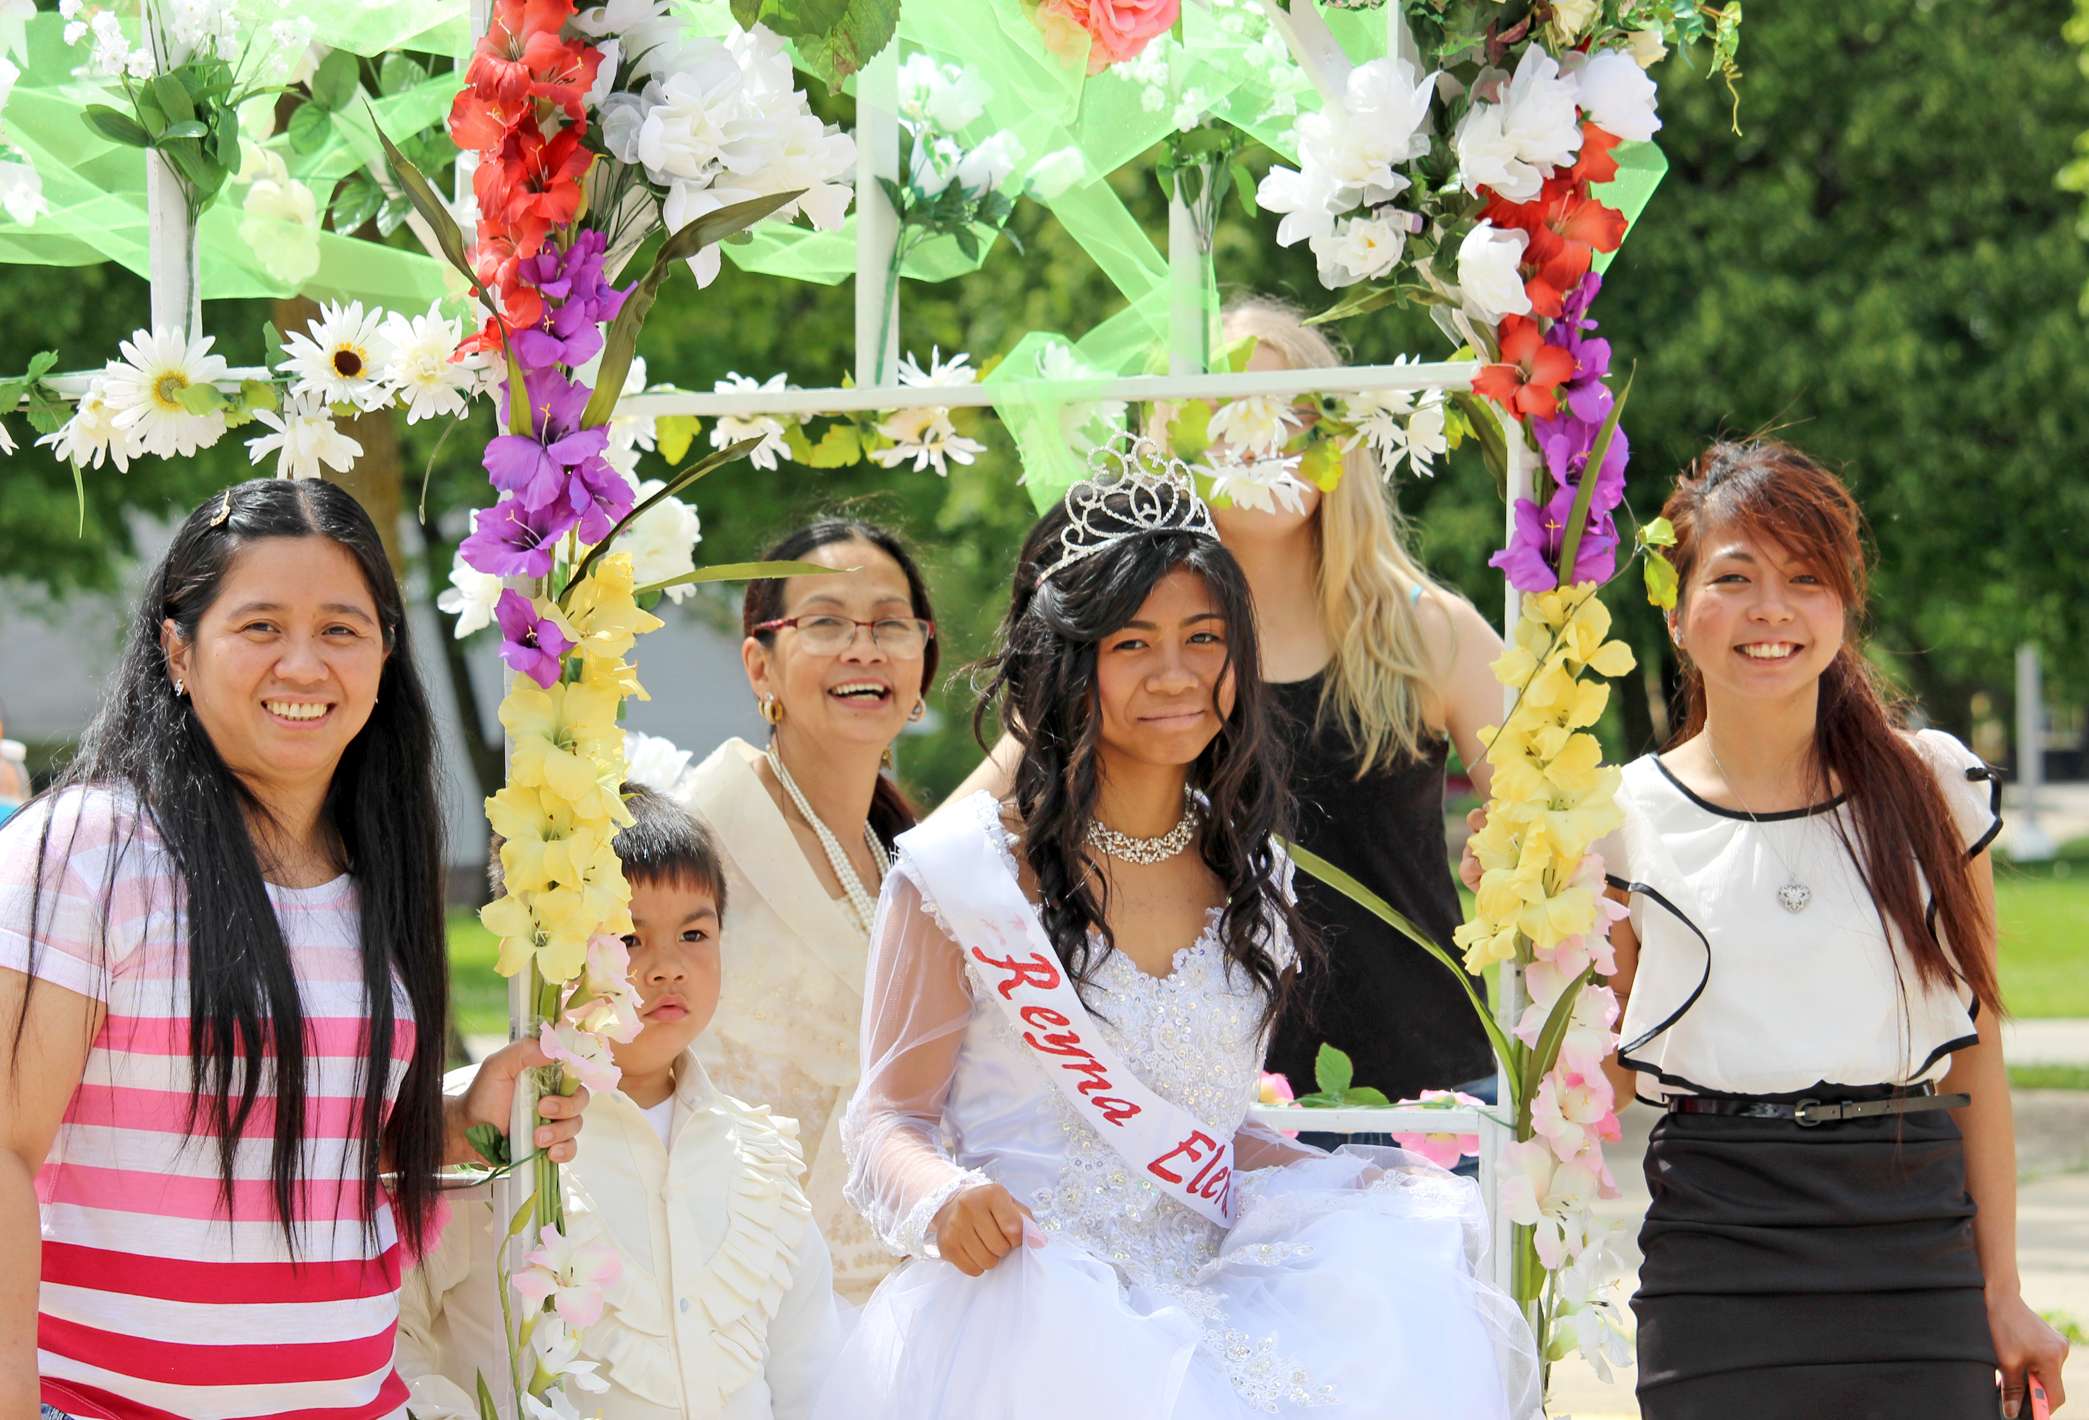 Residents, visitors join in Fil-Am's annual celebration